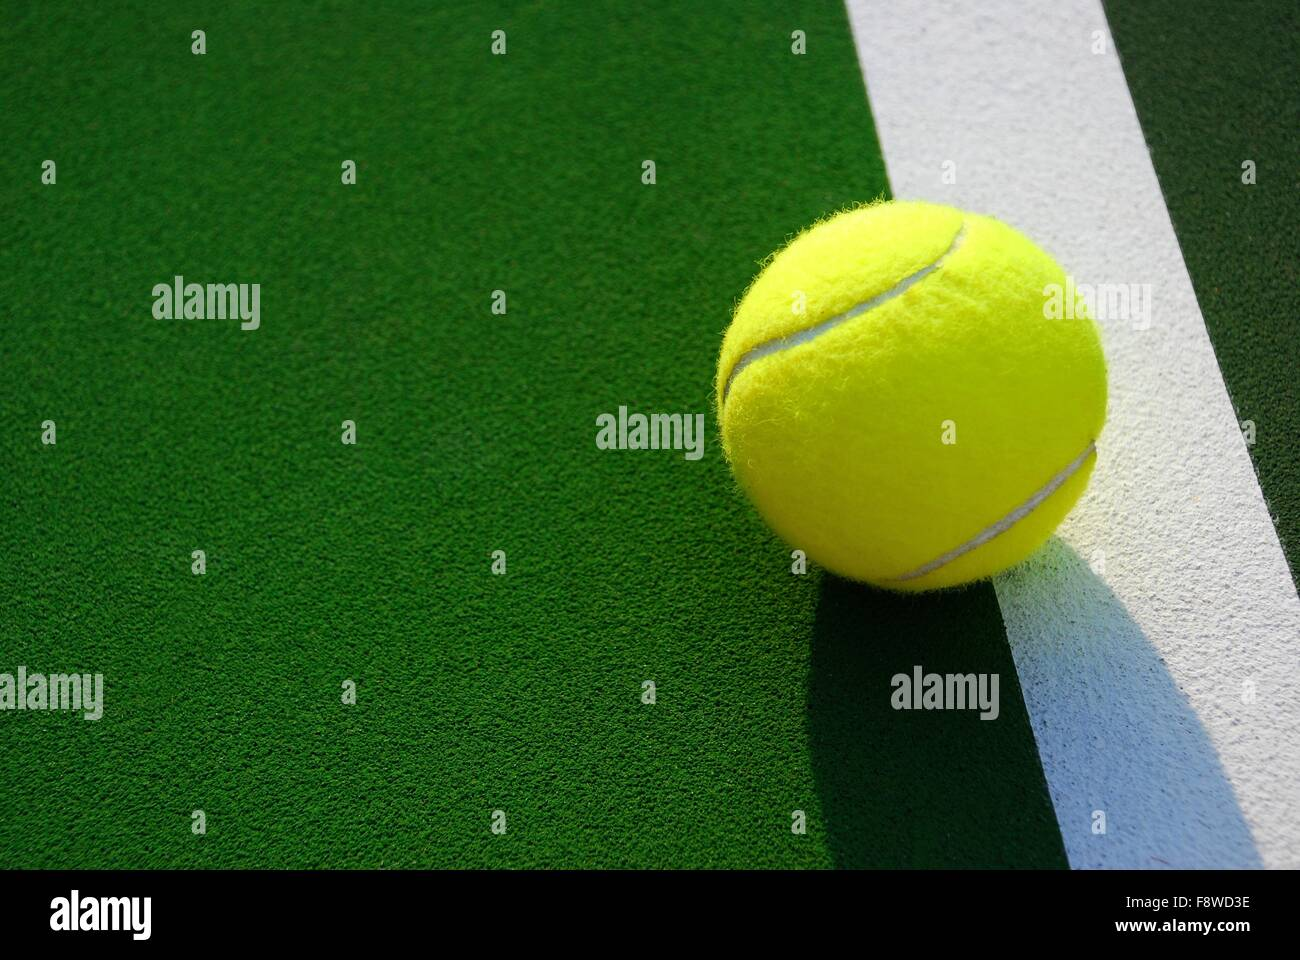 Yellow Tennis Ball on Foul Line - Stock Image